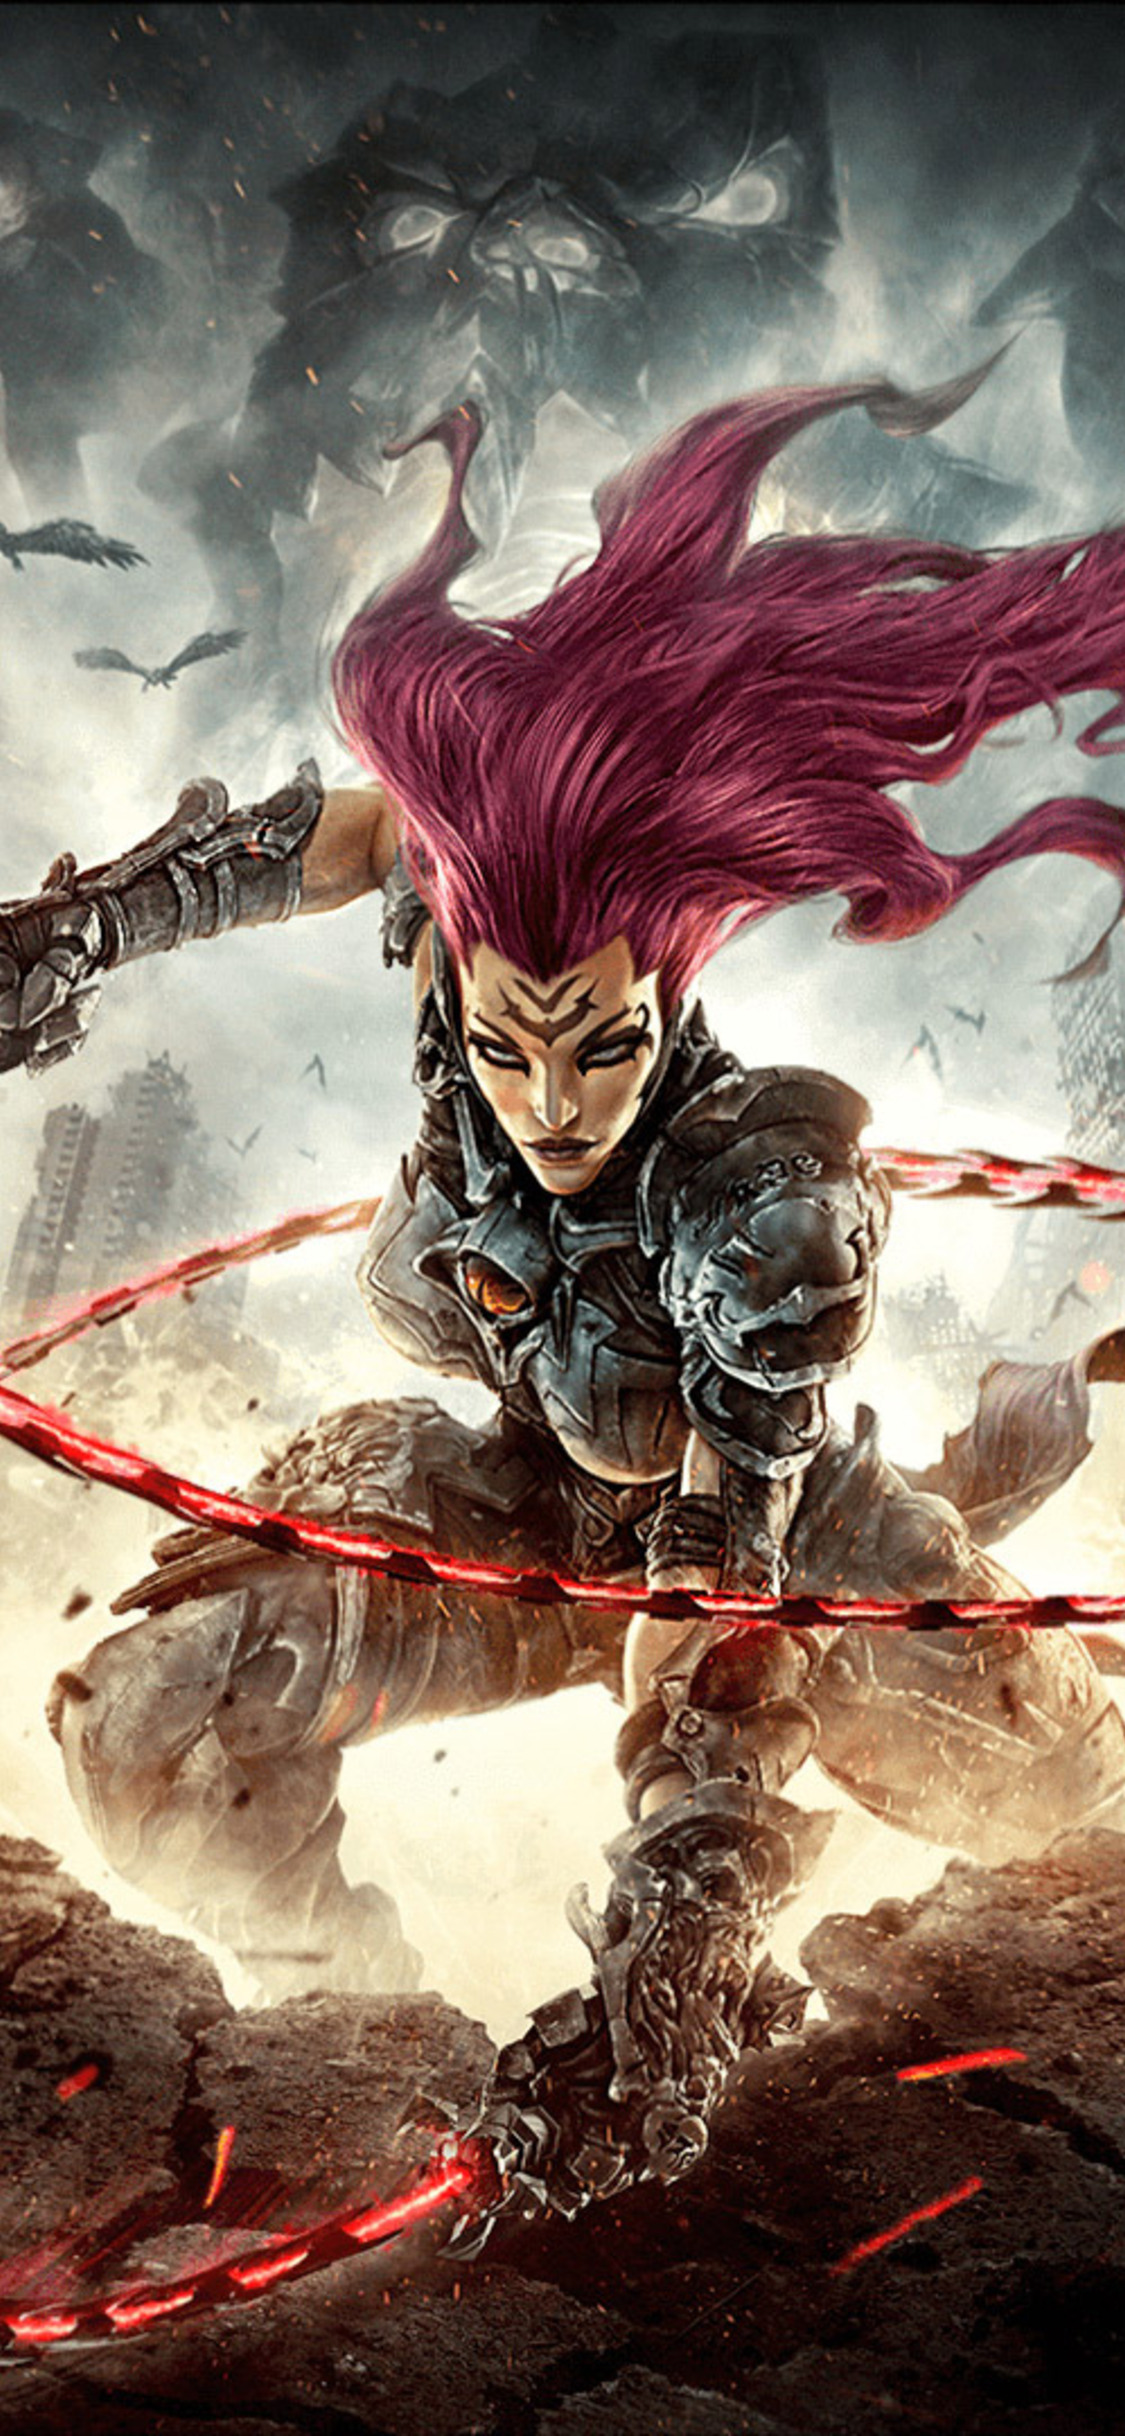 1125x2436 Darksiders Iii Fury Iphone Xs Iphone 10 Iphone X Hd 4k